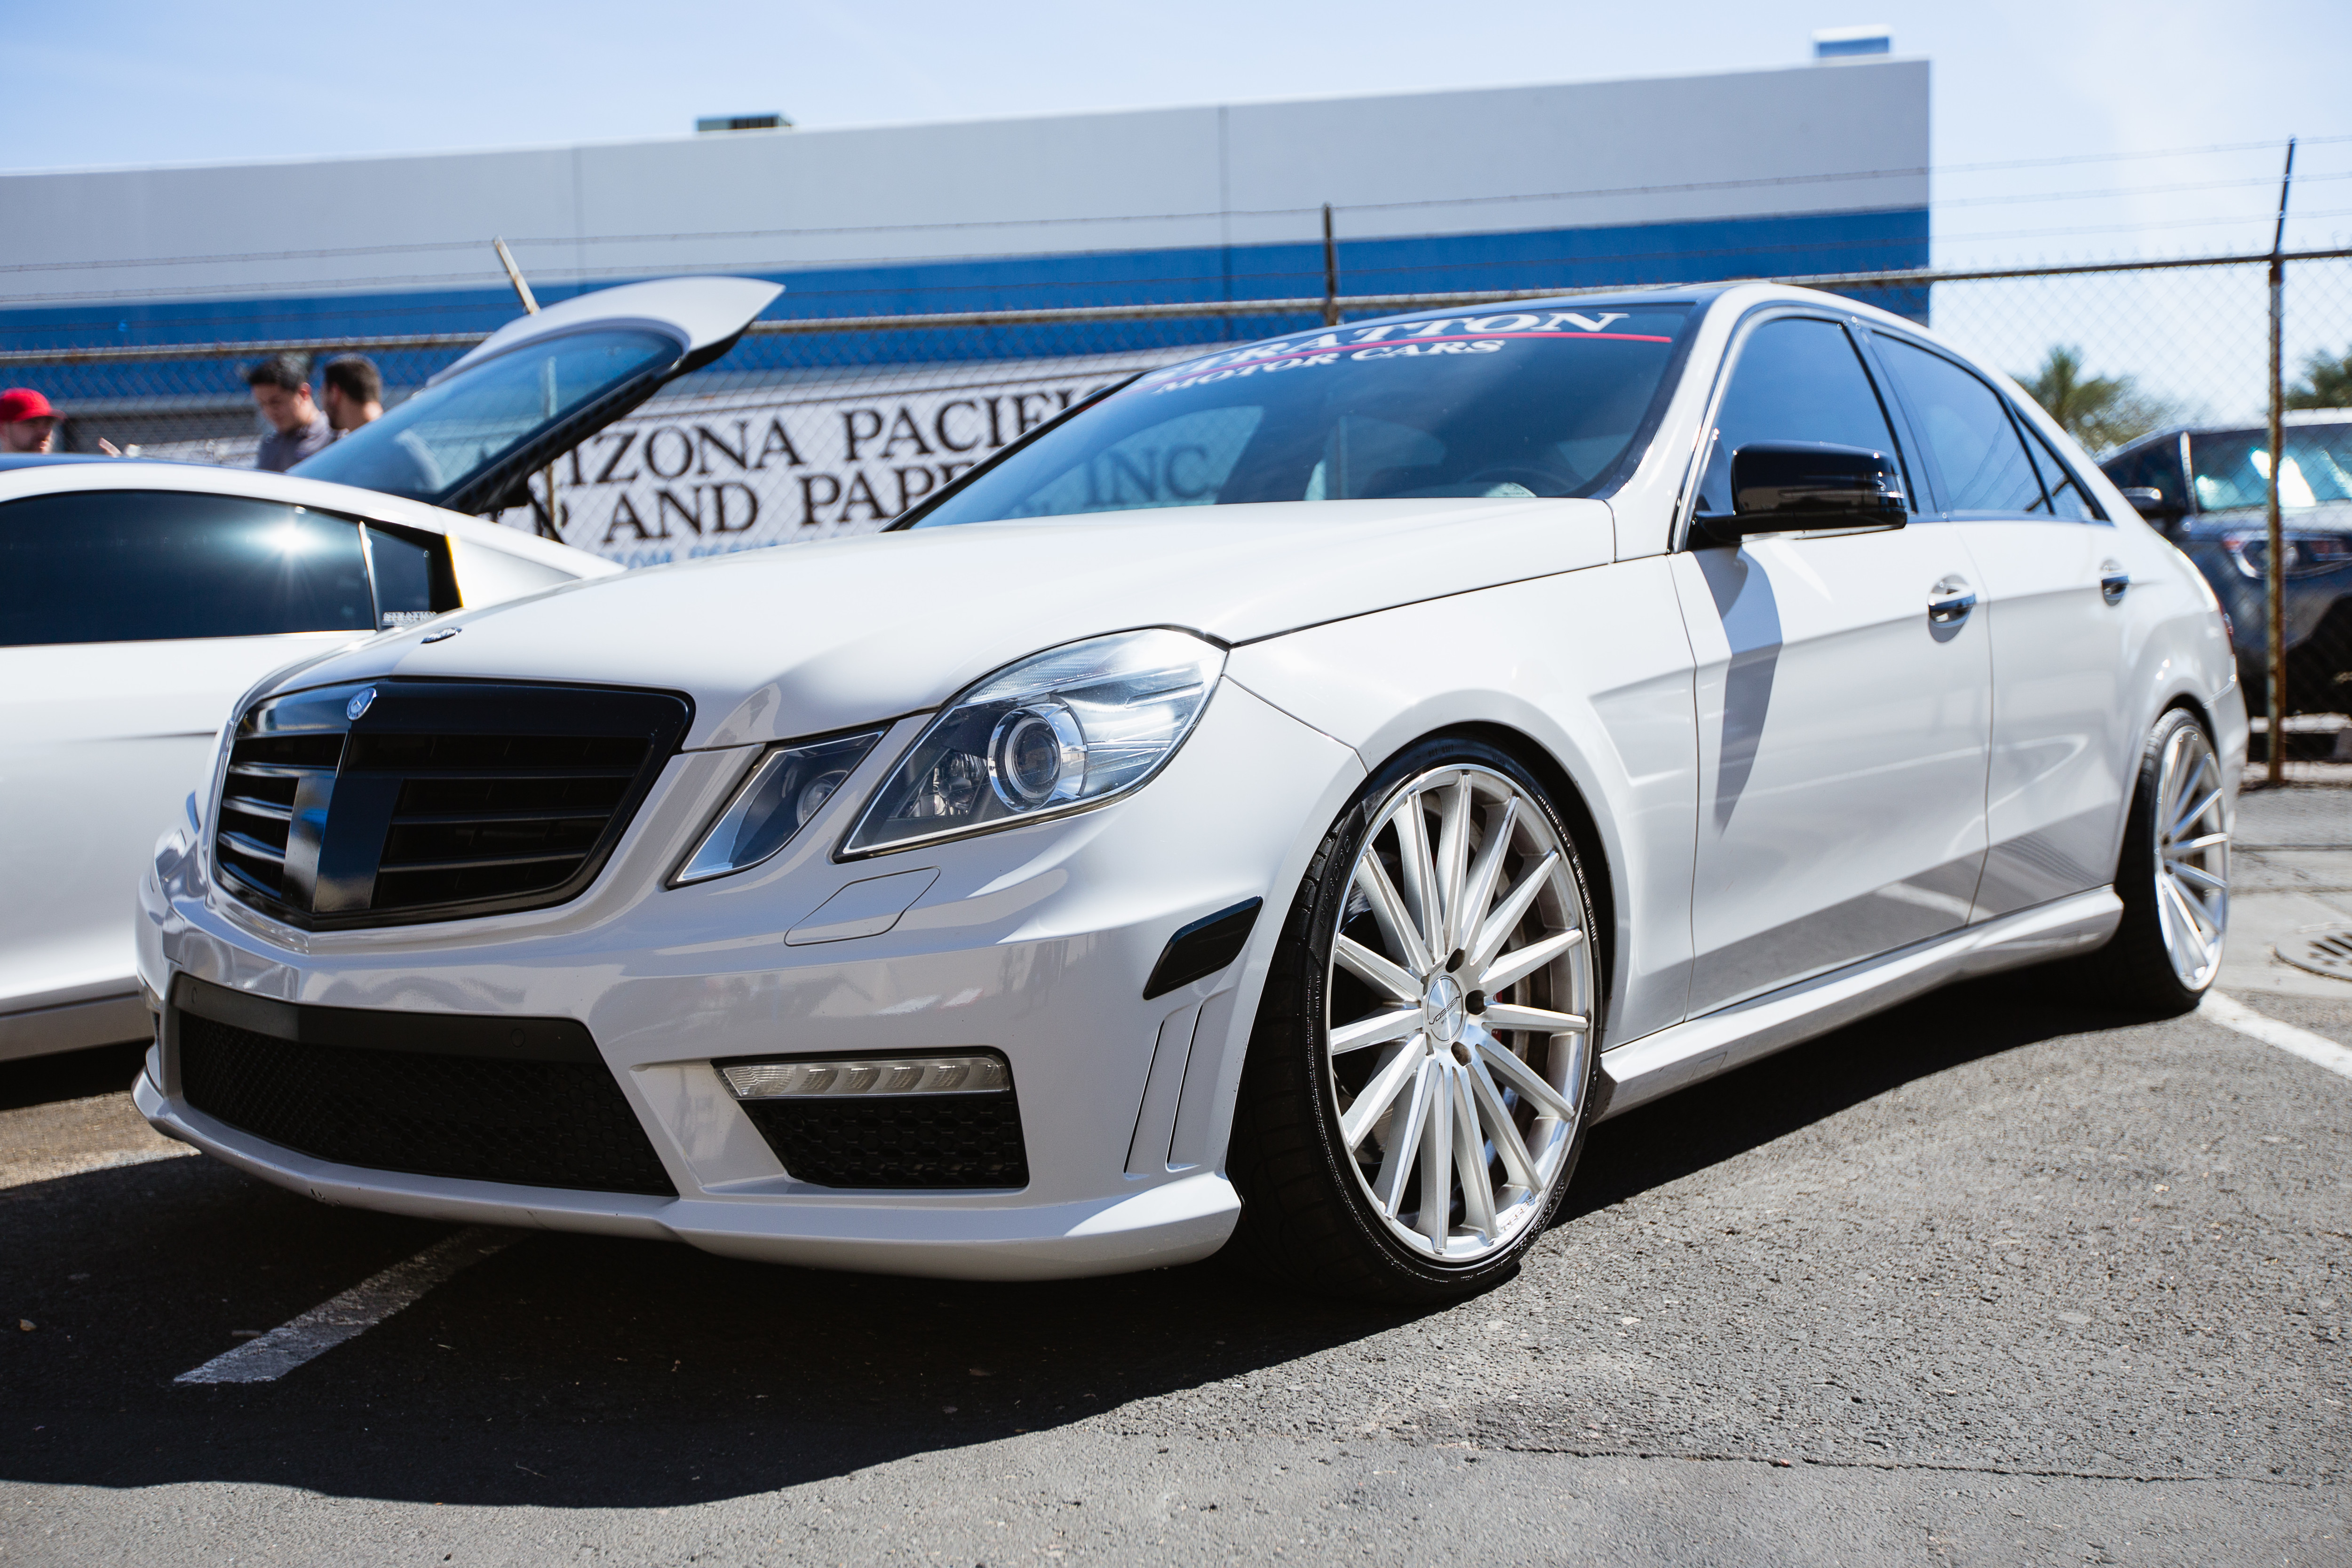 sold 2010 mercedes benz e63 amg stratton motor cars. Black Bedroom Furniture Sets. Home Design Ideas